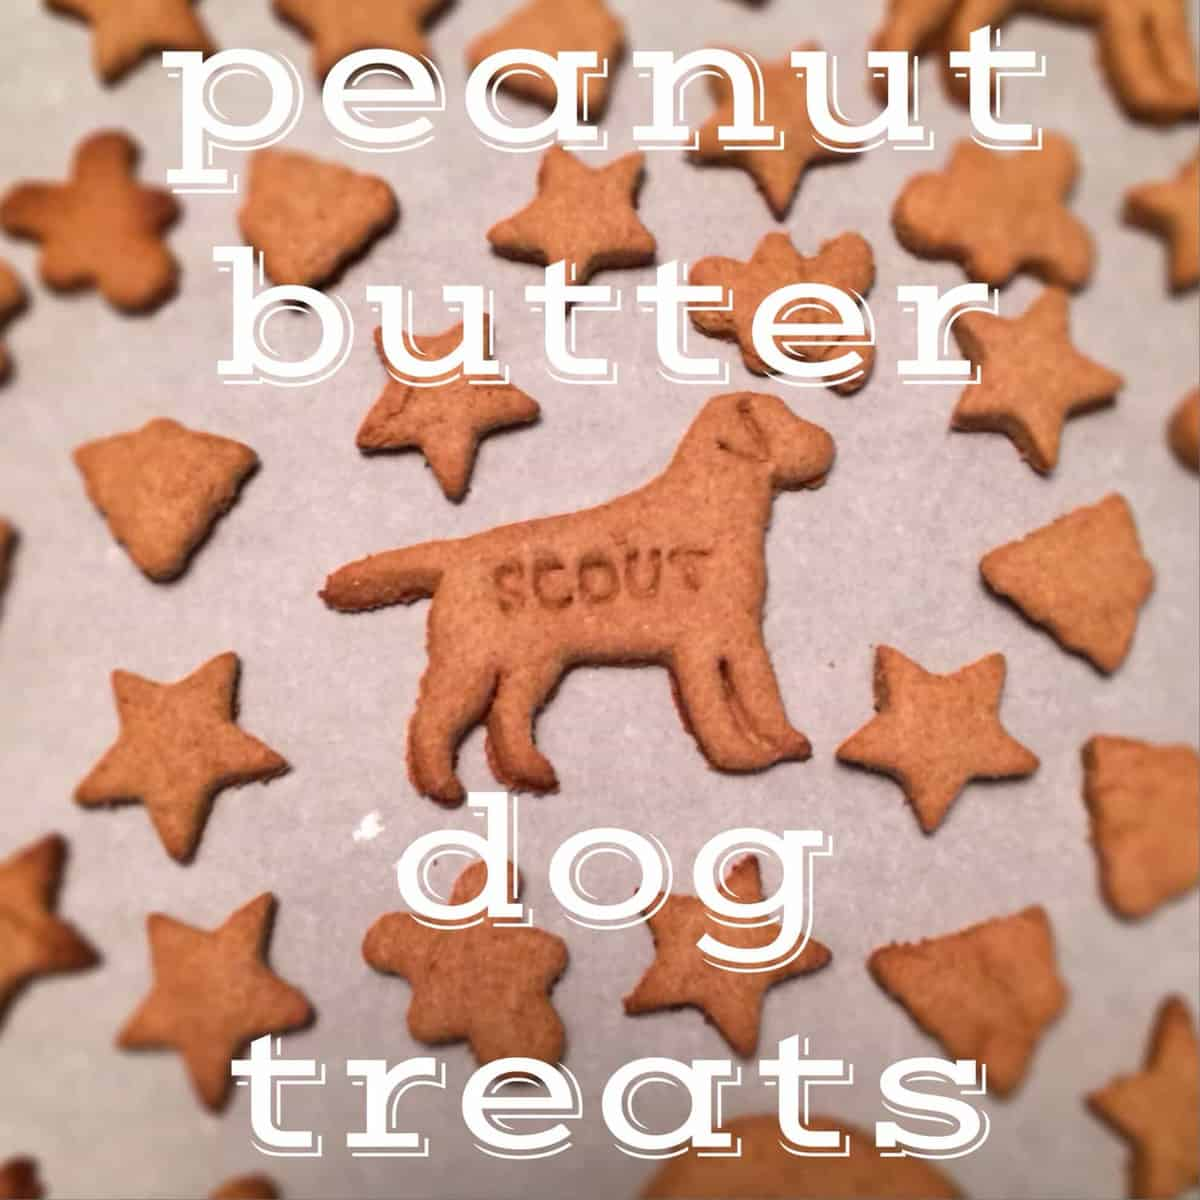 dog treats with text overlay: peanut butter dog treats